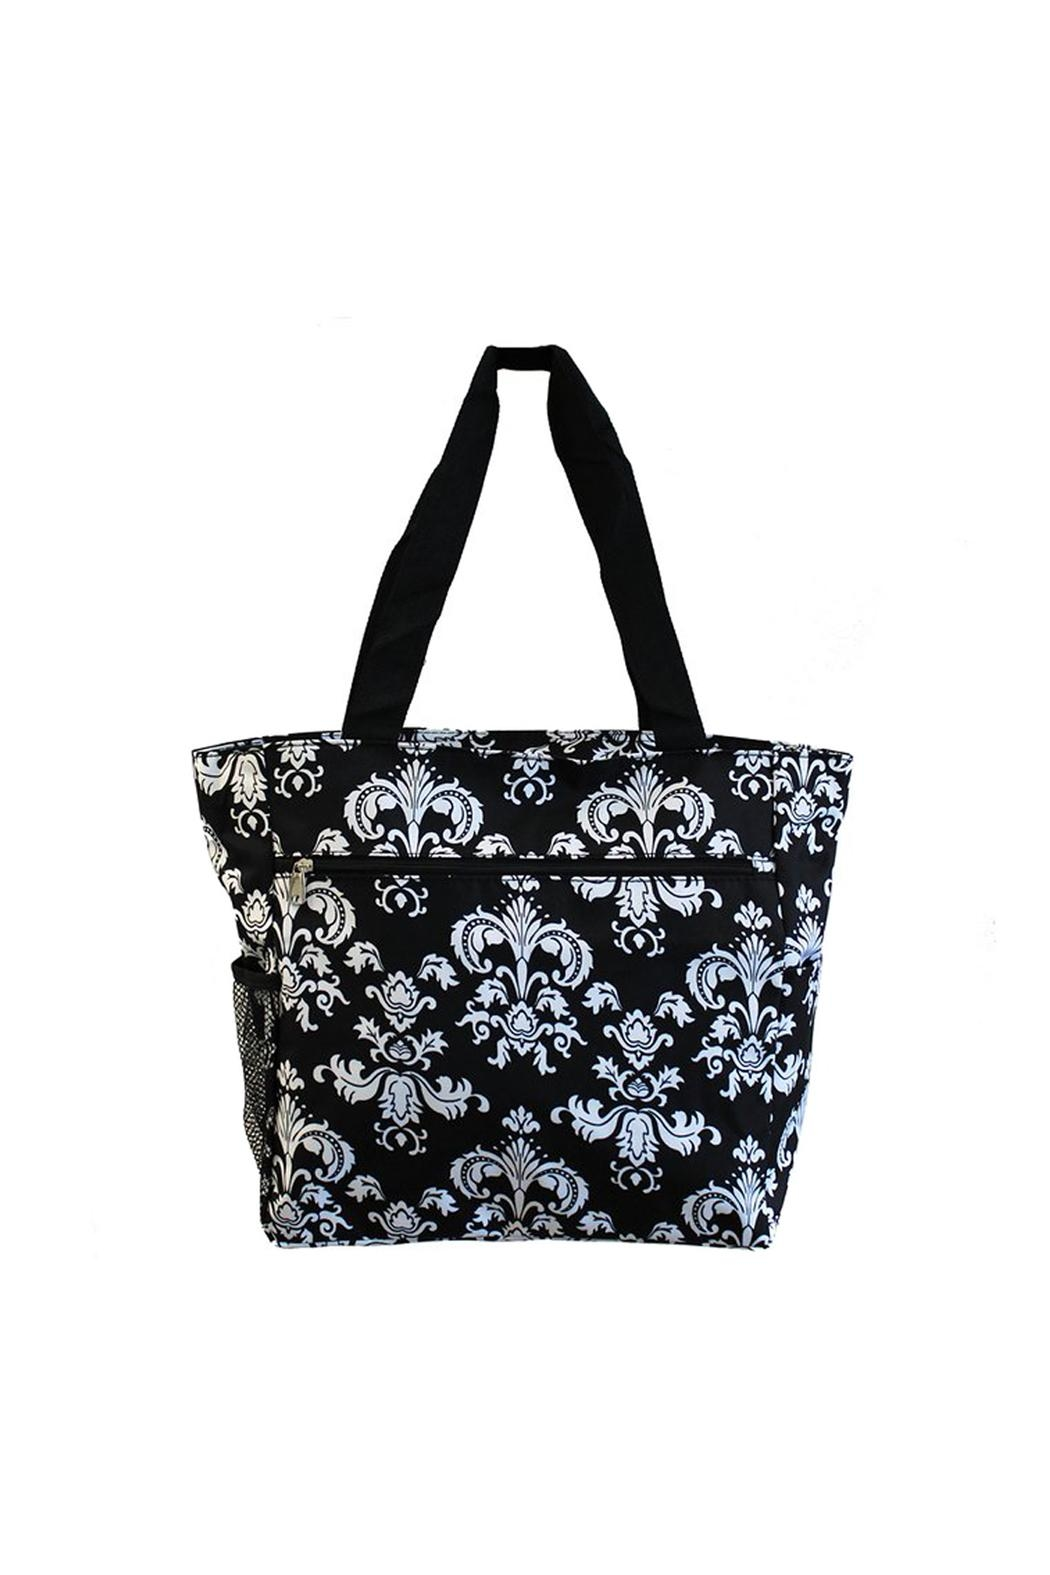 JChronicles Beach Tote Bags - Main Image